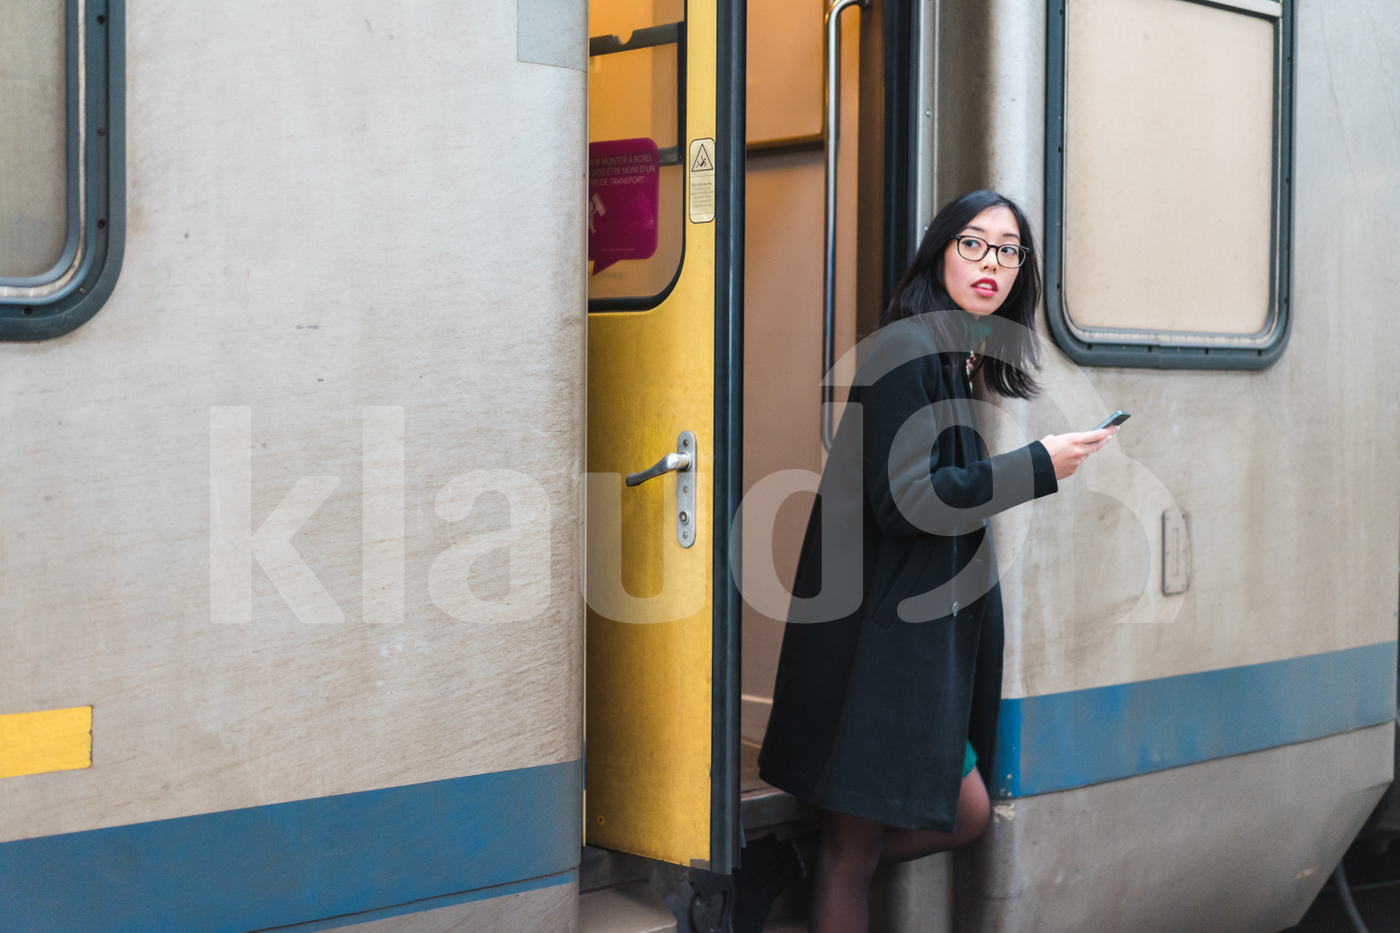 Asian millennial stepping off a train holding her mobile